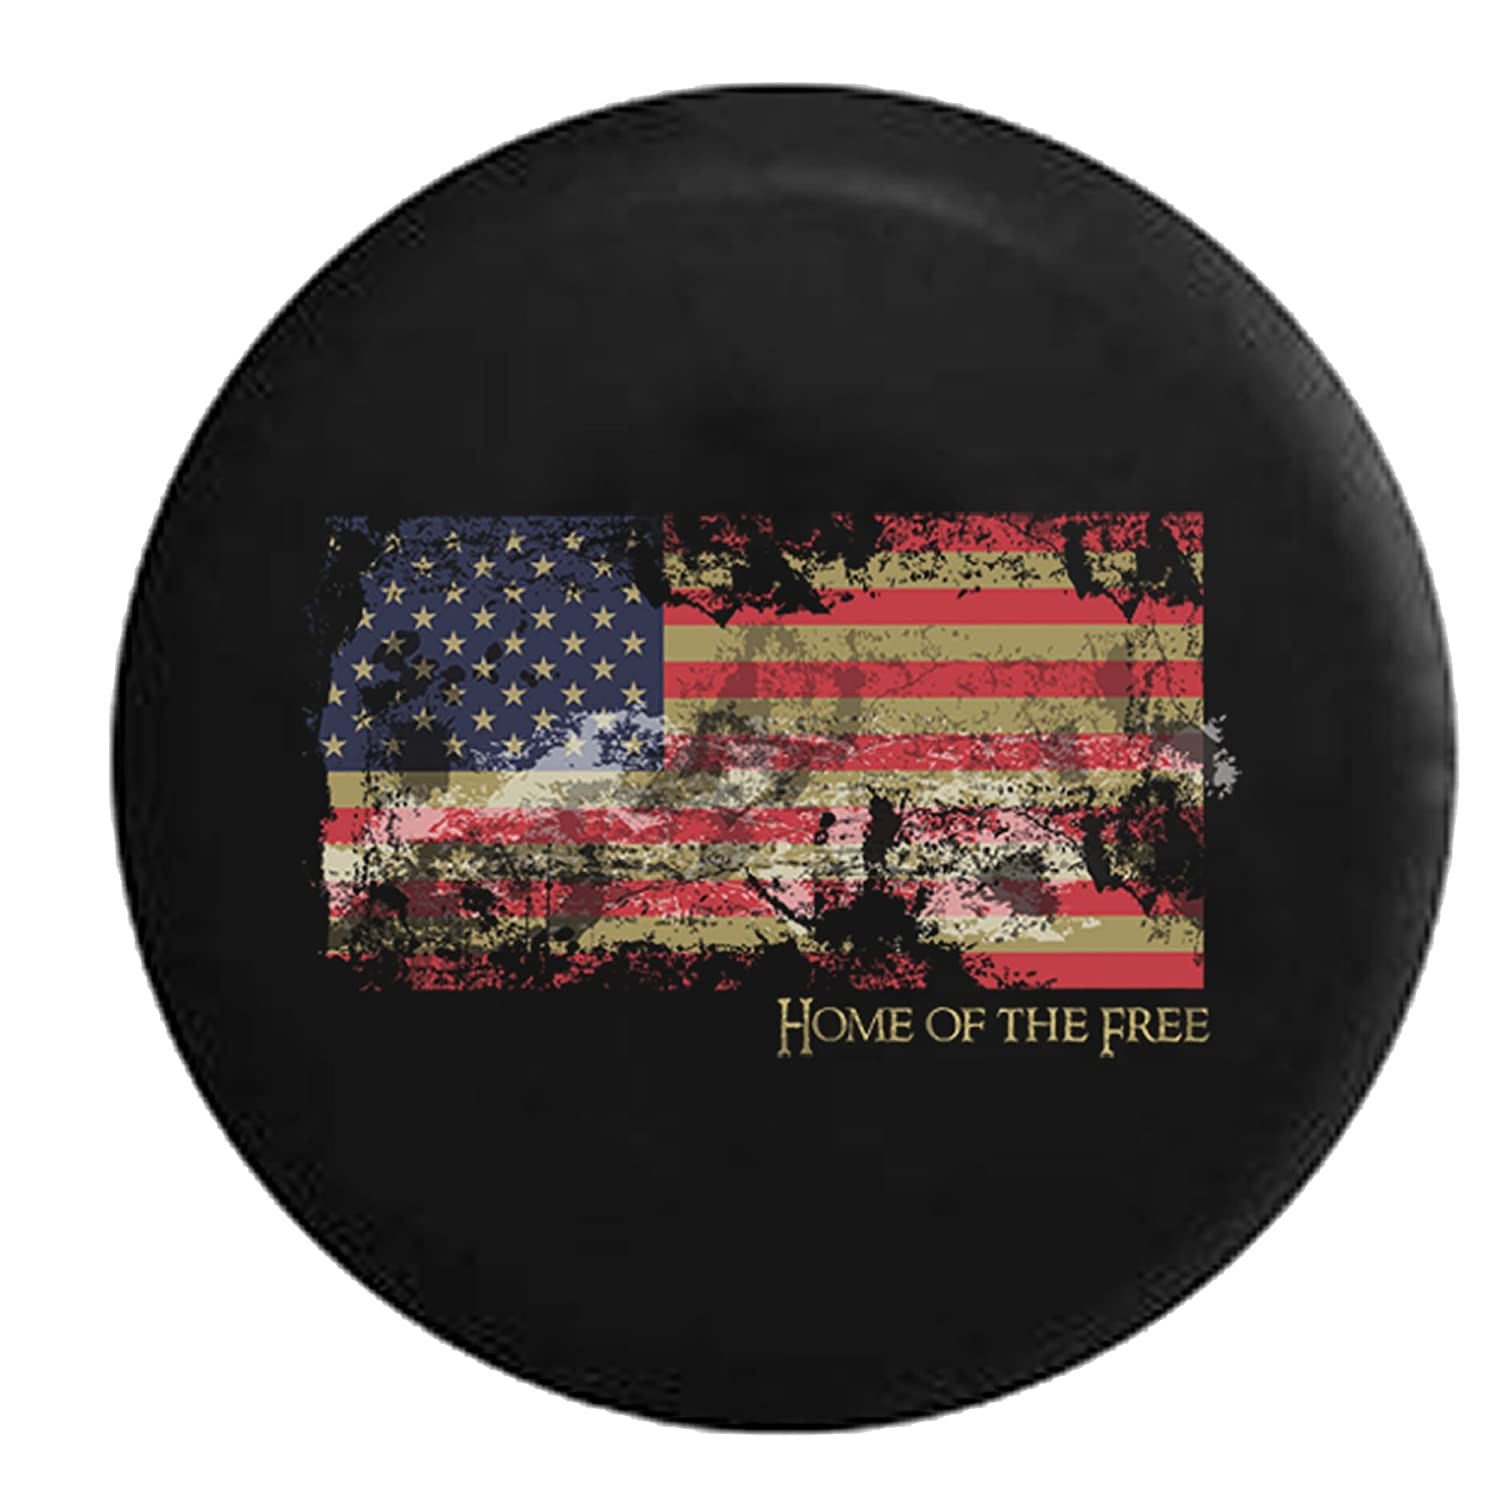 Vintage Distressed American Flag - Home of the Free - Patriotic Pride Spare Tire Cover Black 33 in American Unlimited